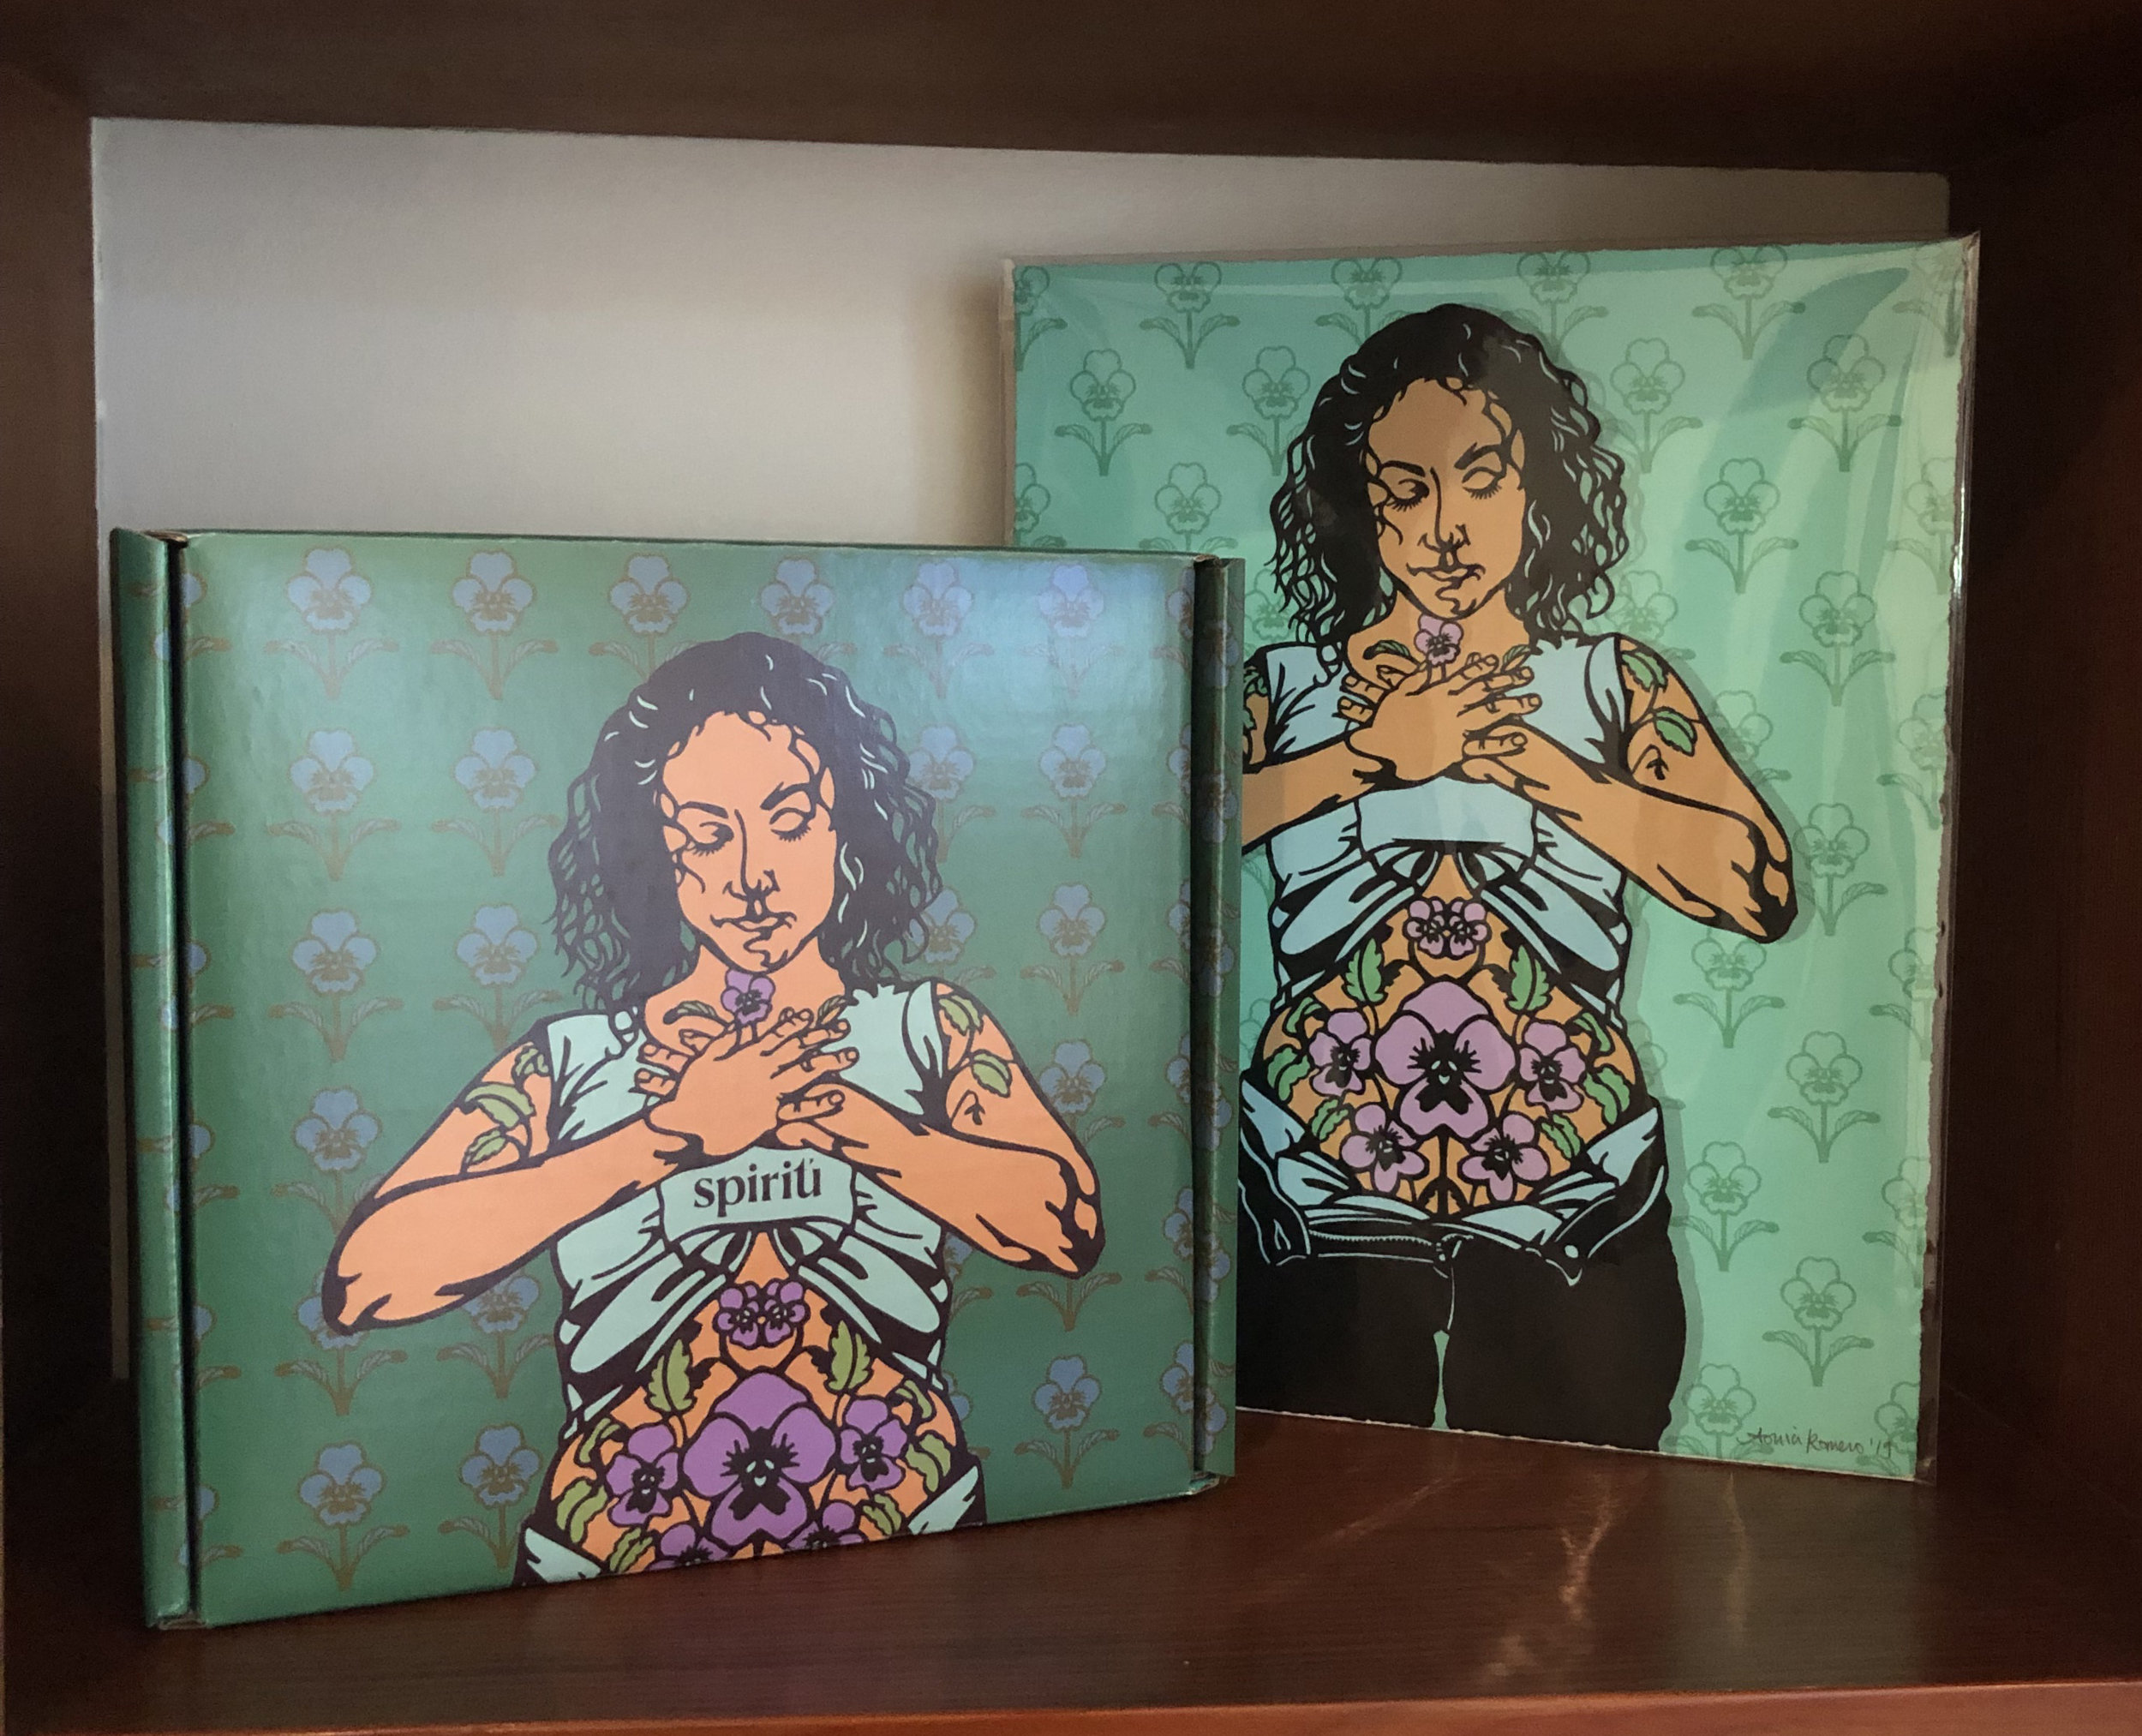 Left: Spring Spiritu box design, Right: Limited Edition Silkscreen by Sonia Romero